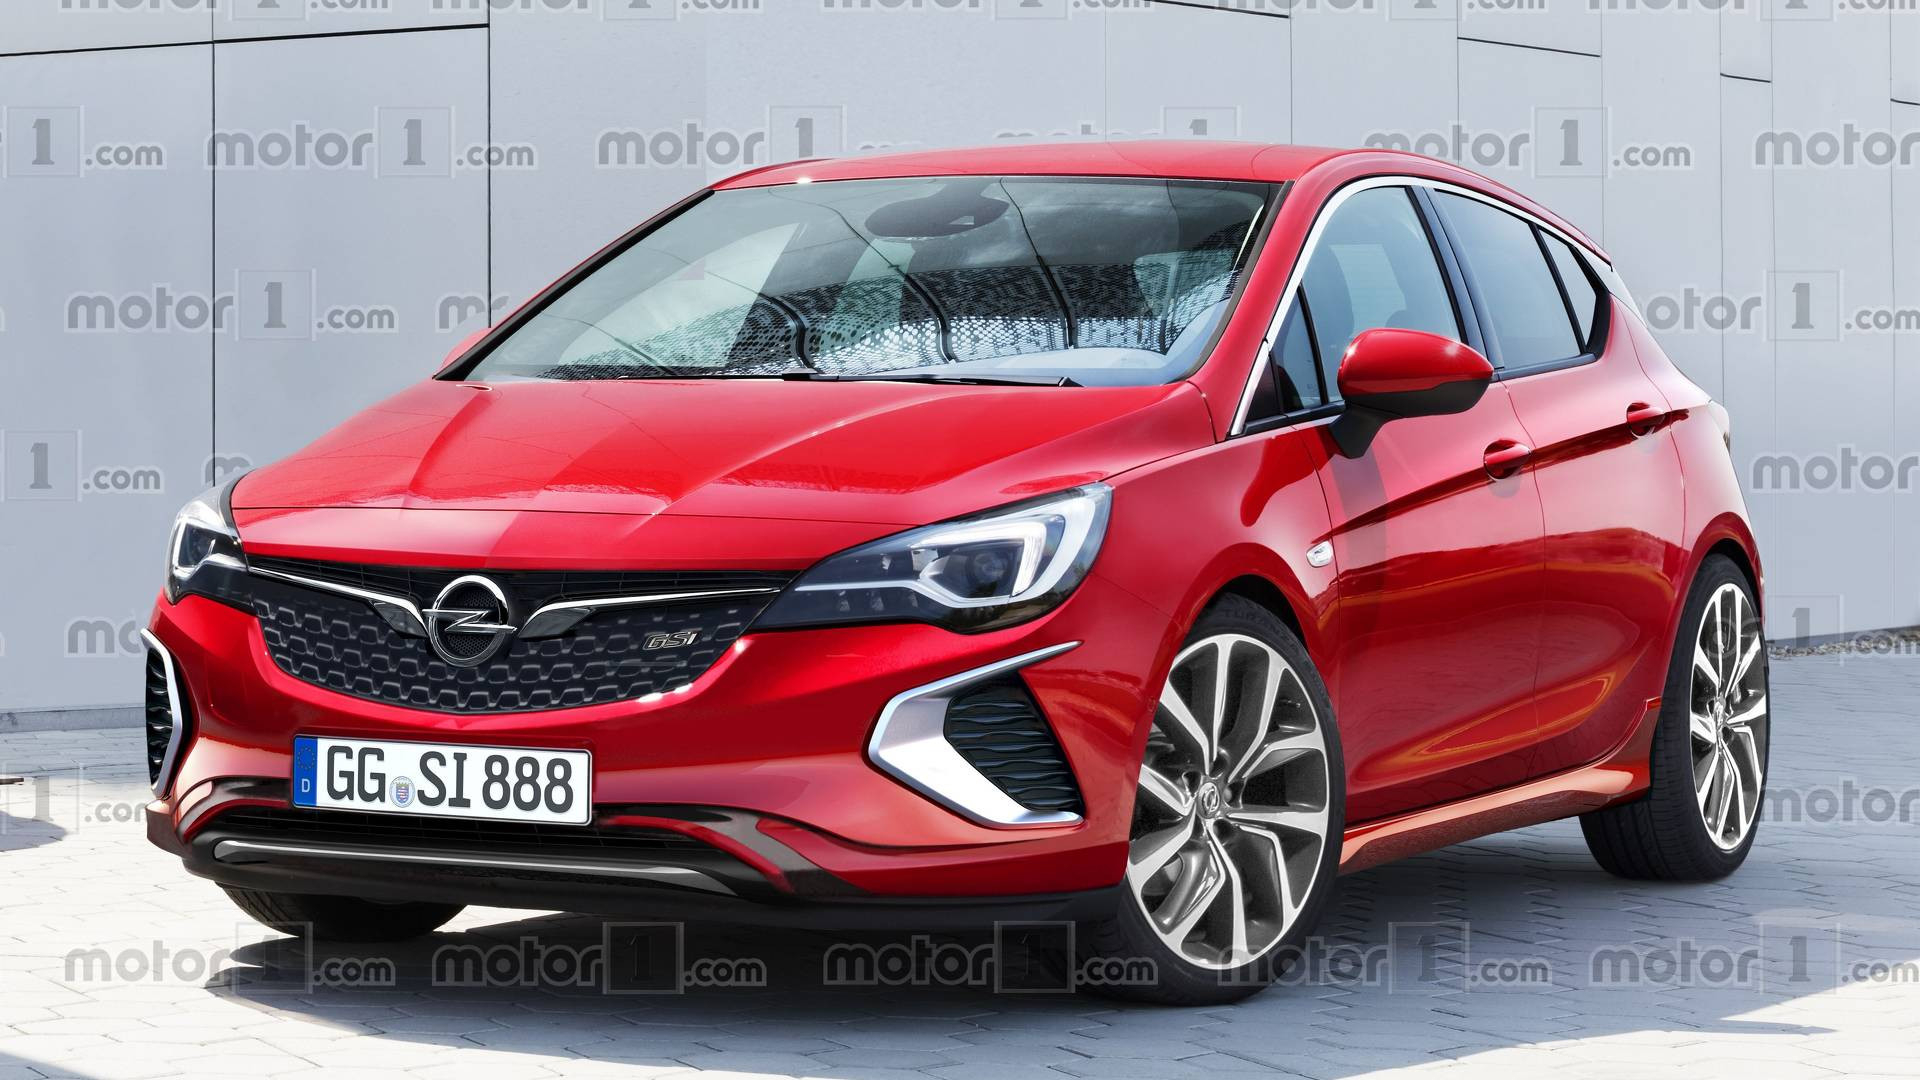 66 The Best 2020 Opel Astra Picture